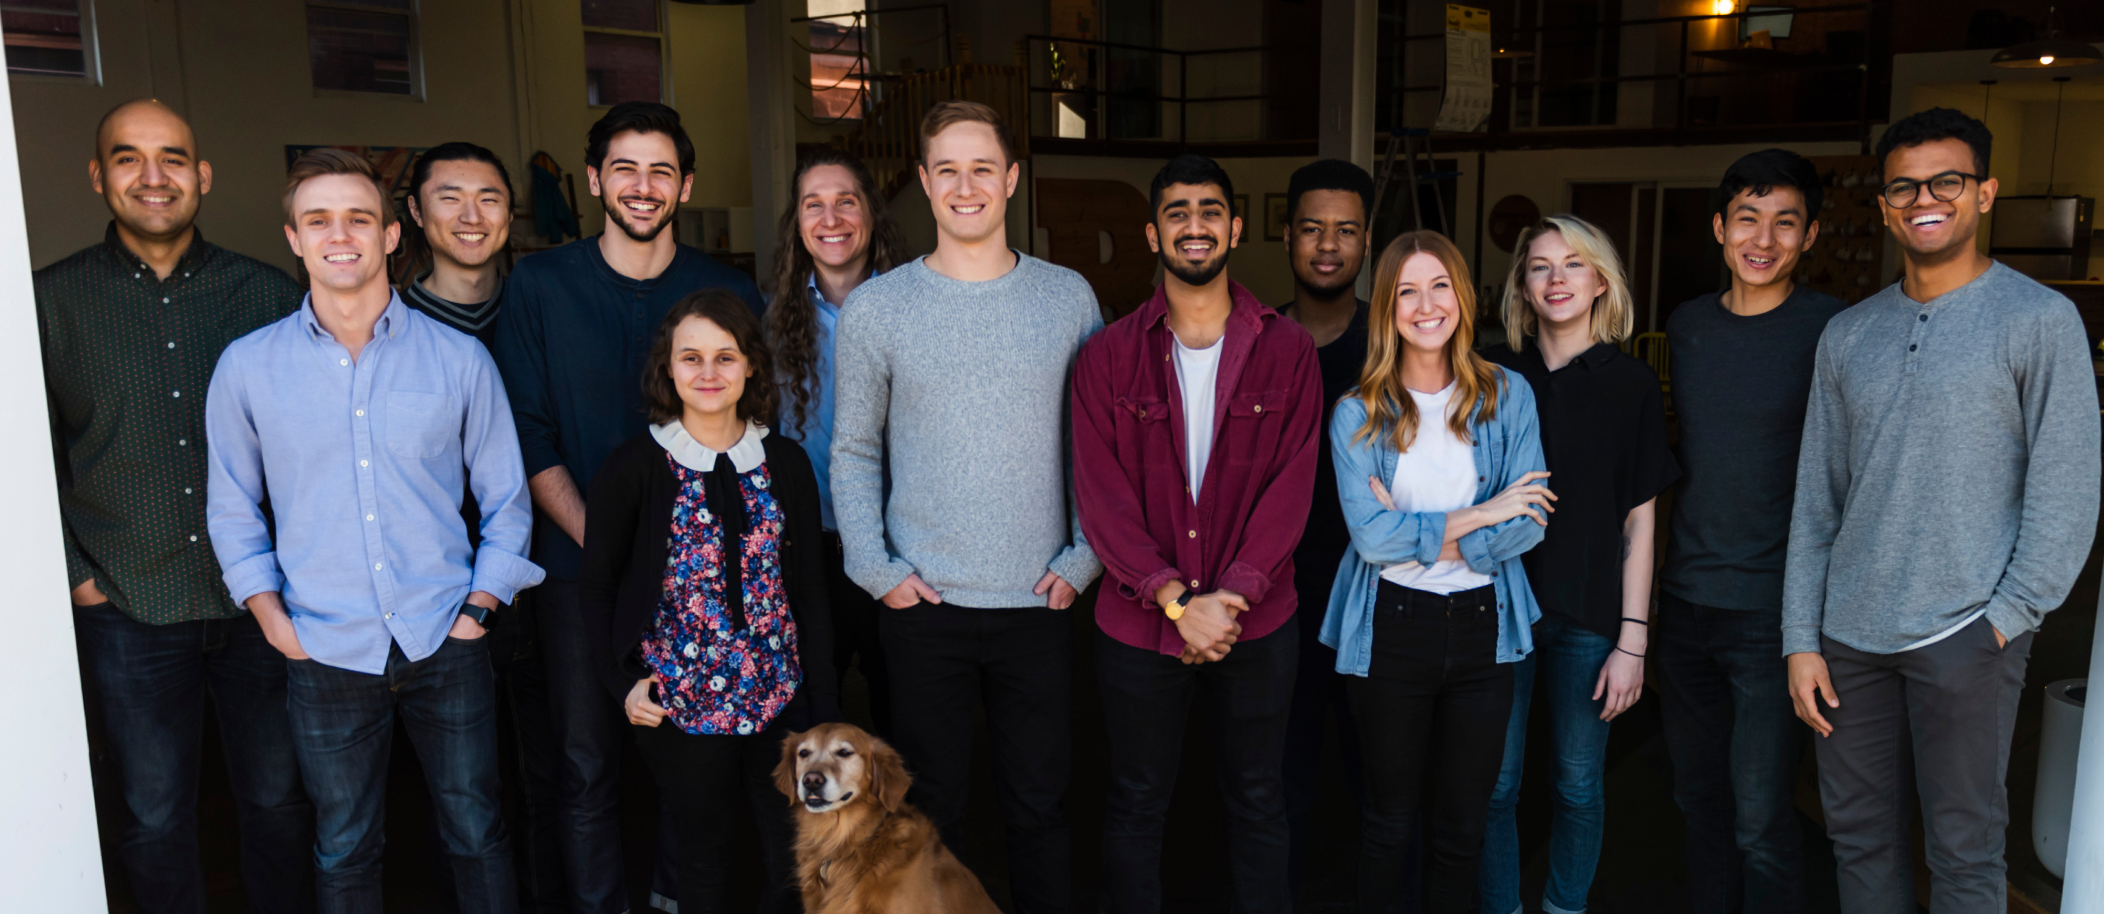 A photo of the Air team in the NY office.